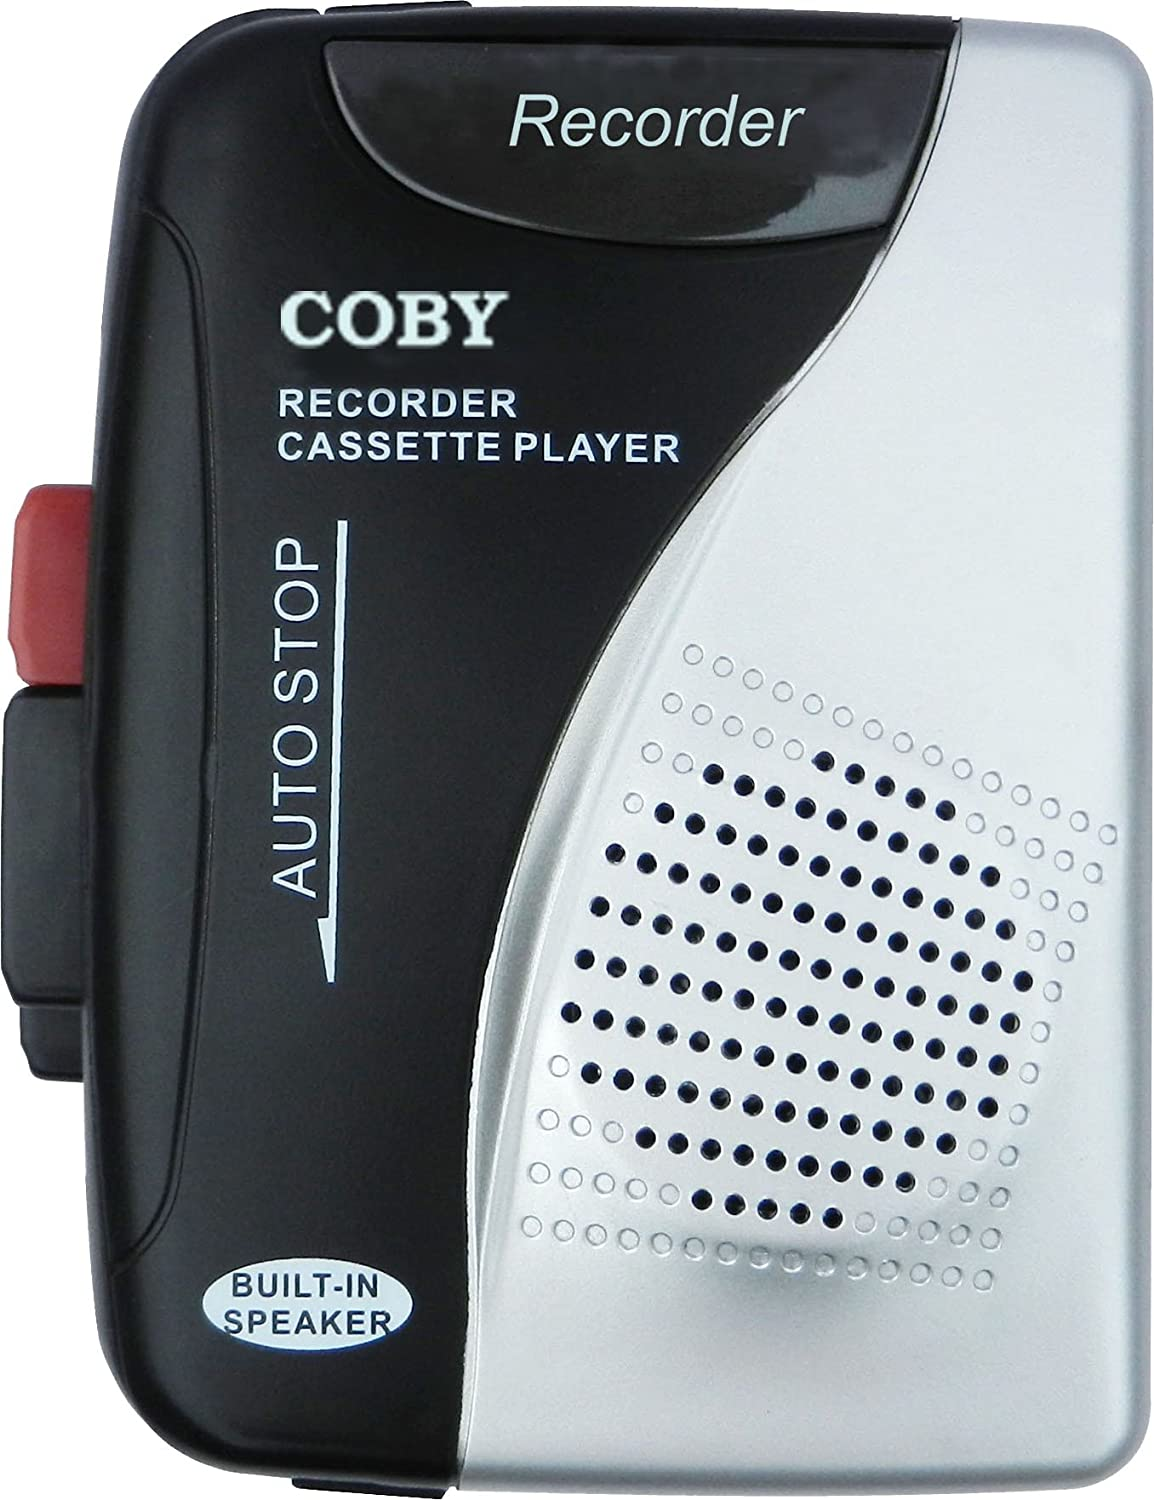 Coby CRV-21 Cassette Recorder/Player with Built-in Microphone and Speaker Summit Electronics US